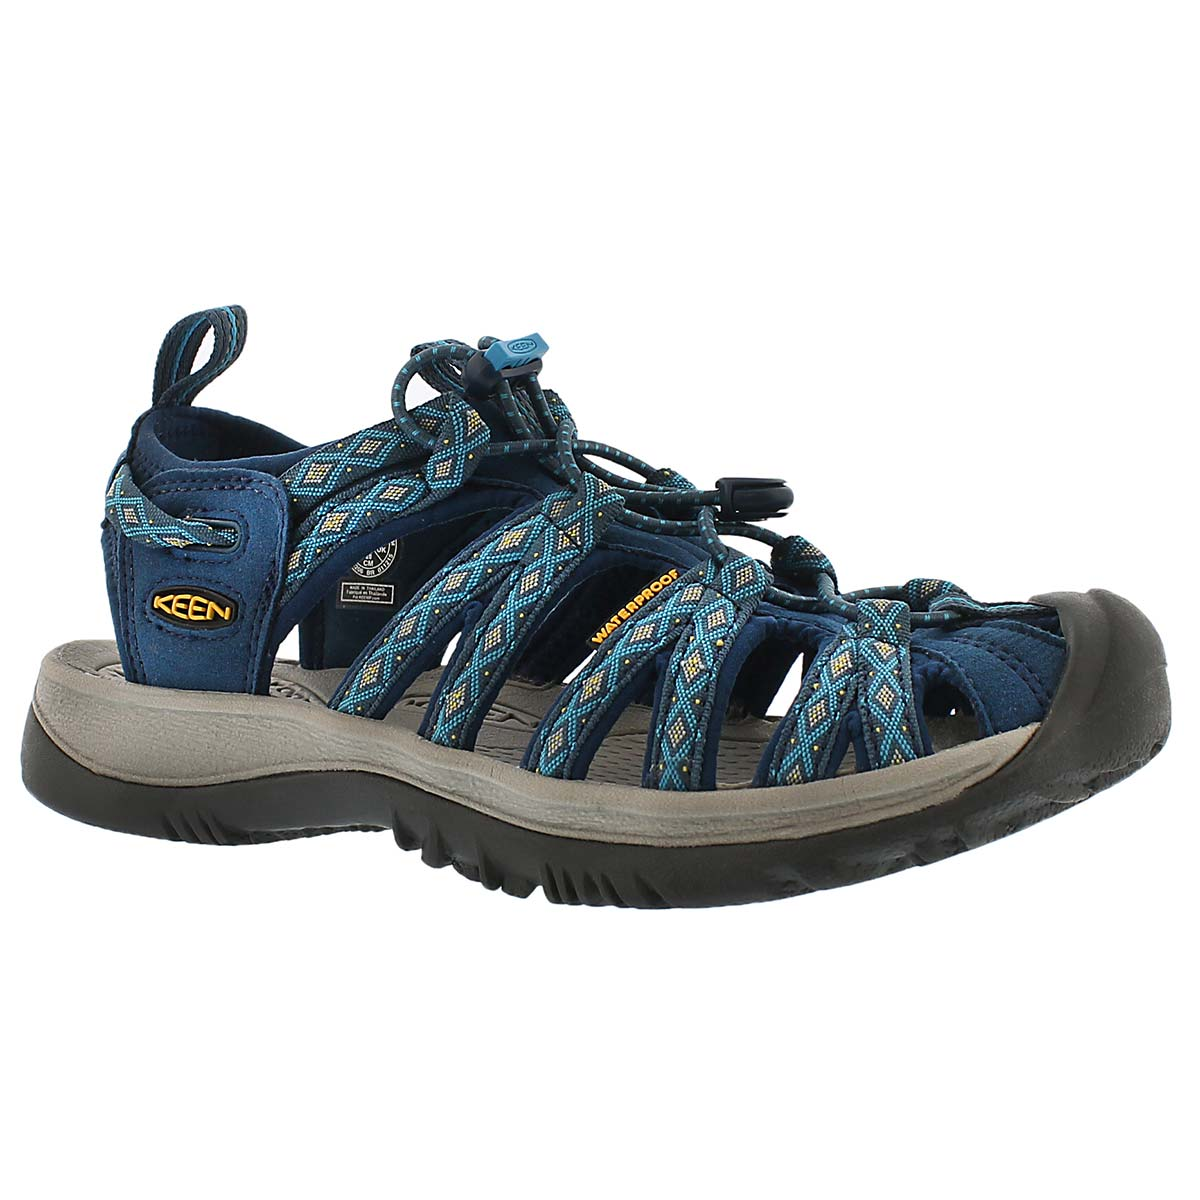 Women's WHISPER poseidon/blue sport sandals